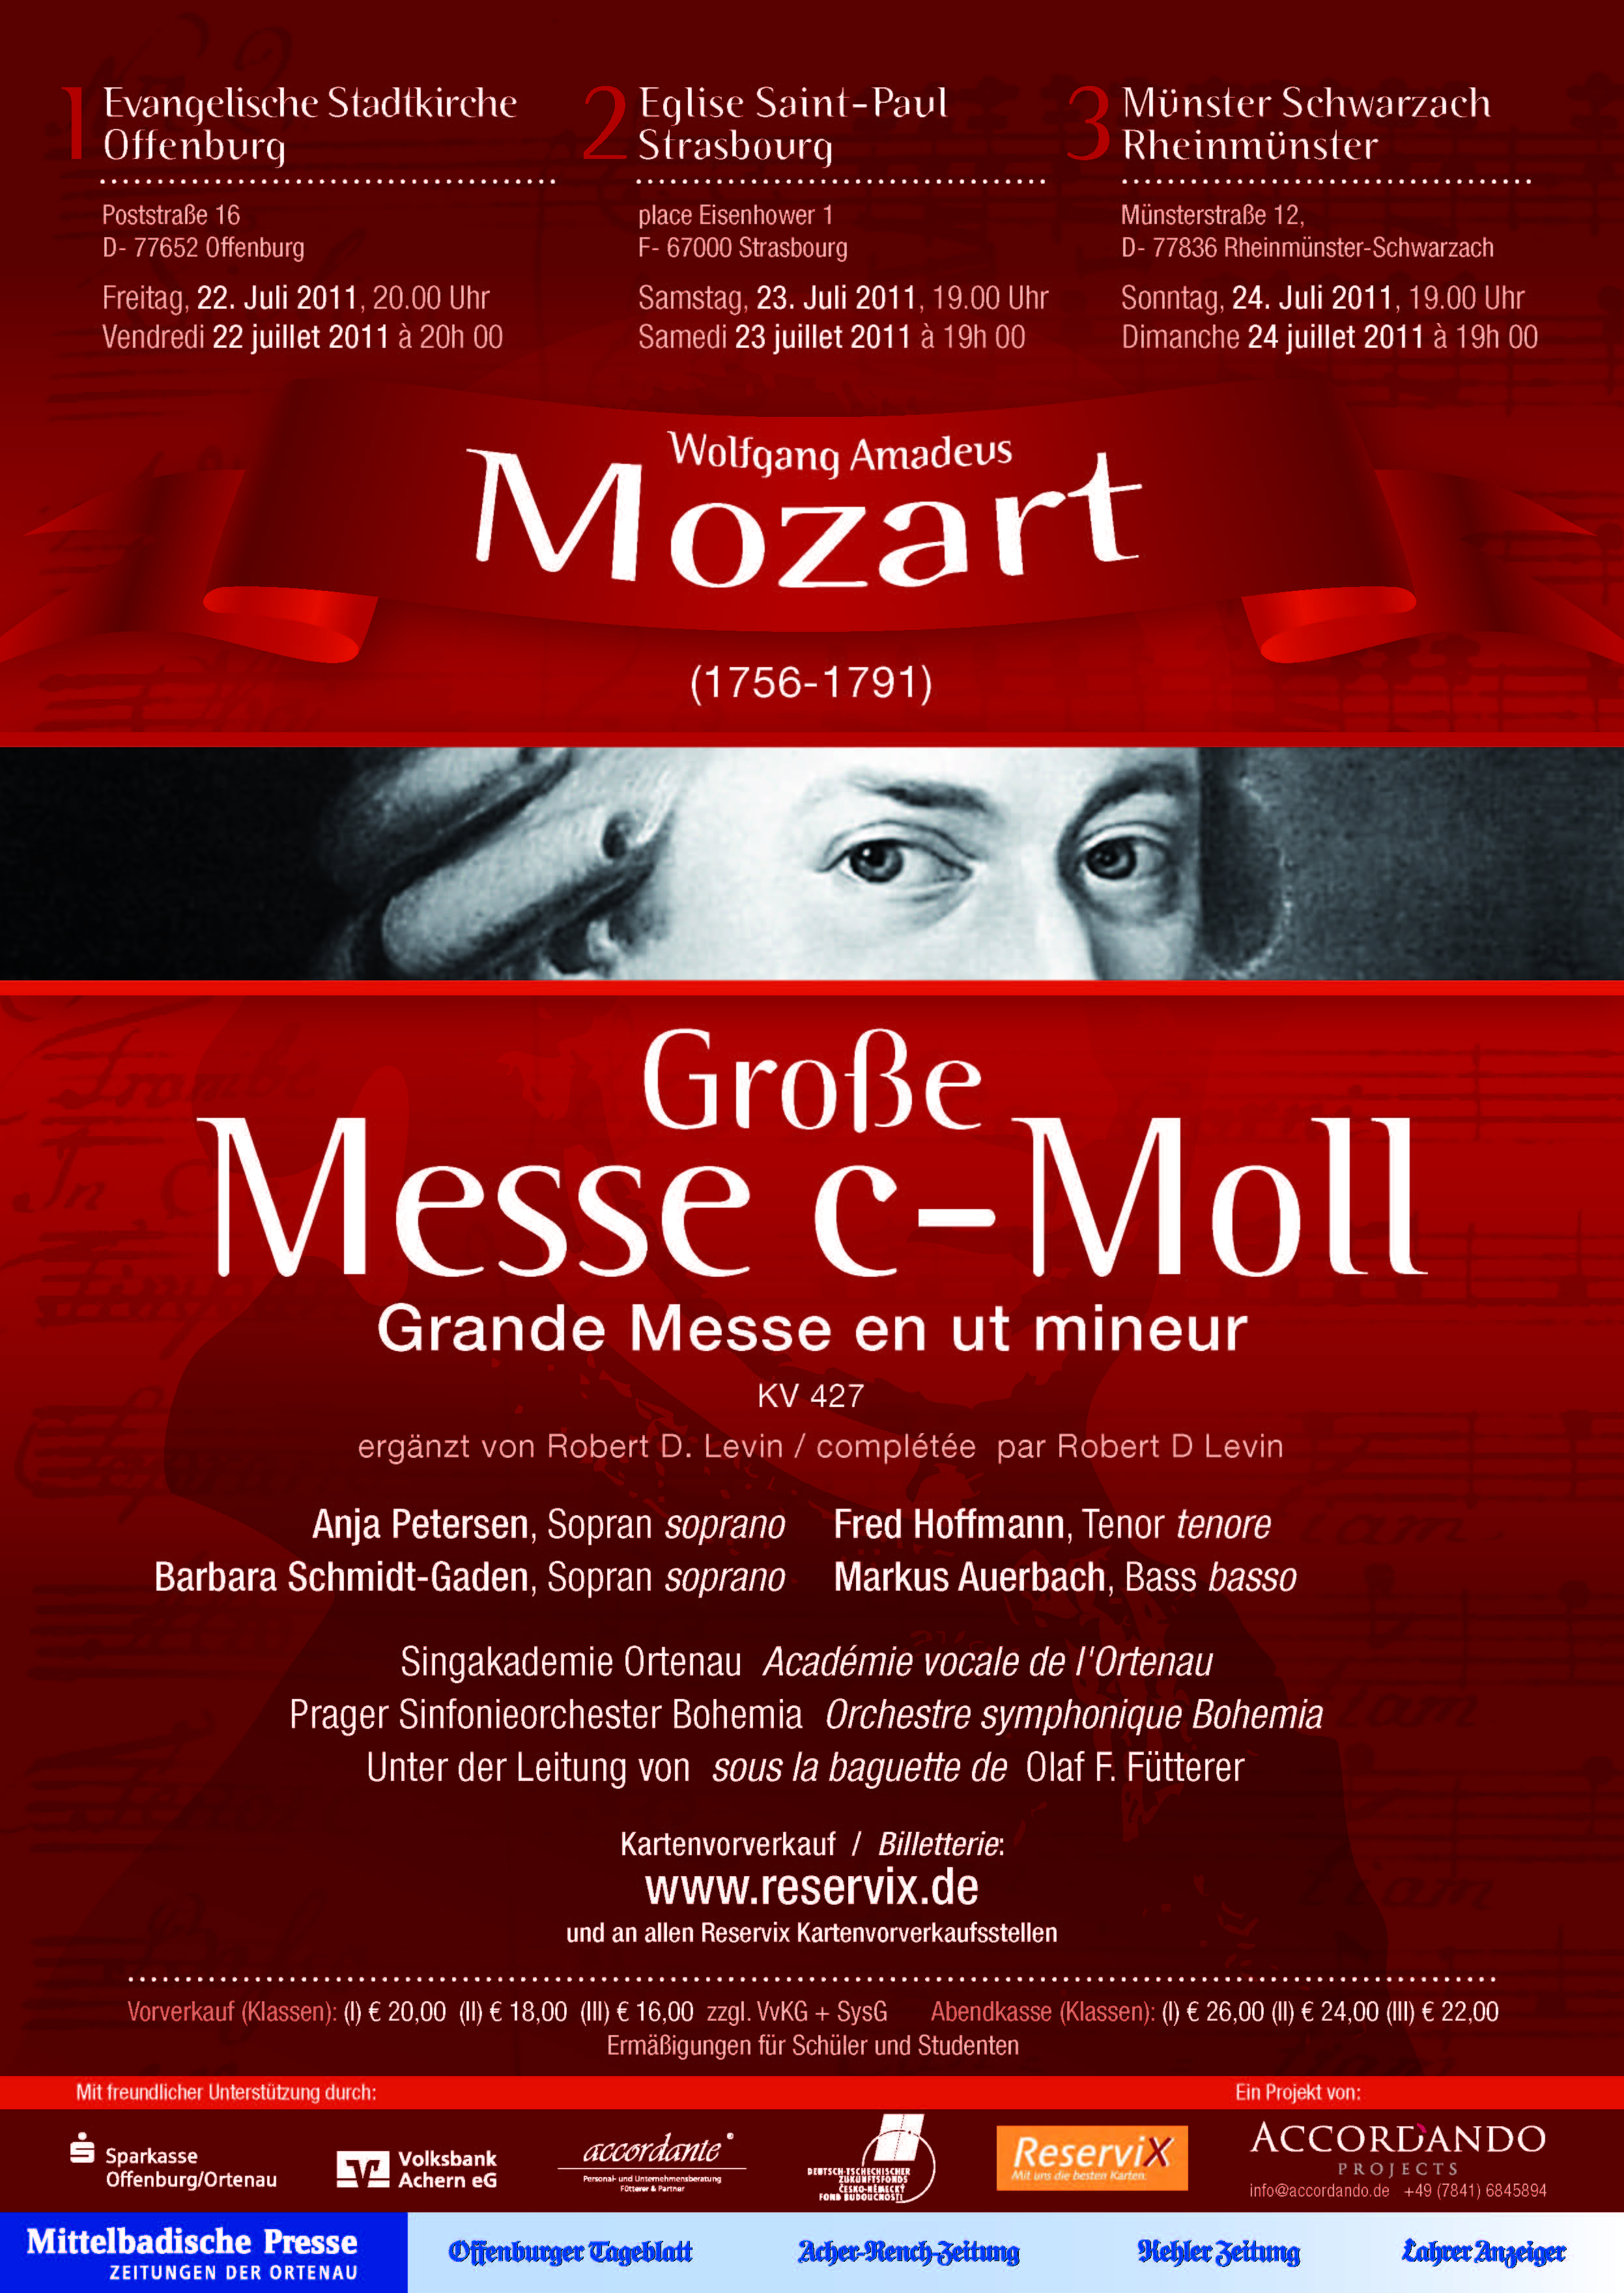 Mozart_Messe in c-M oll